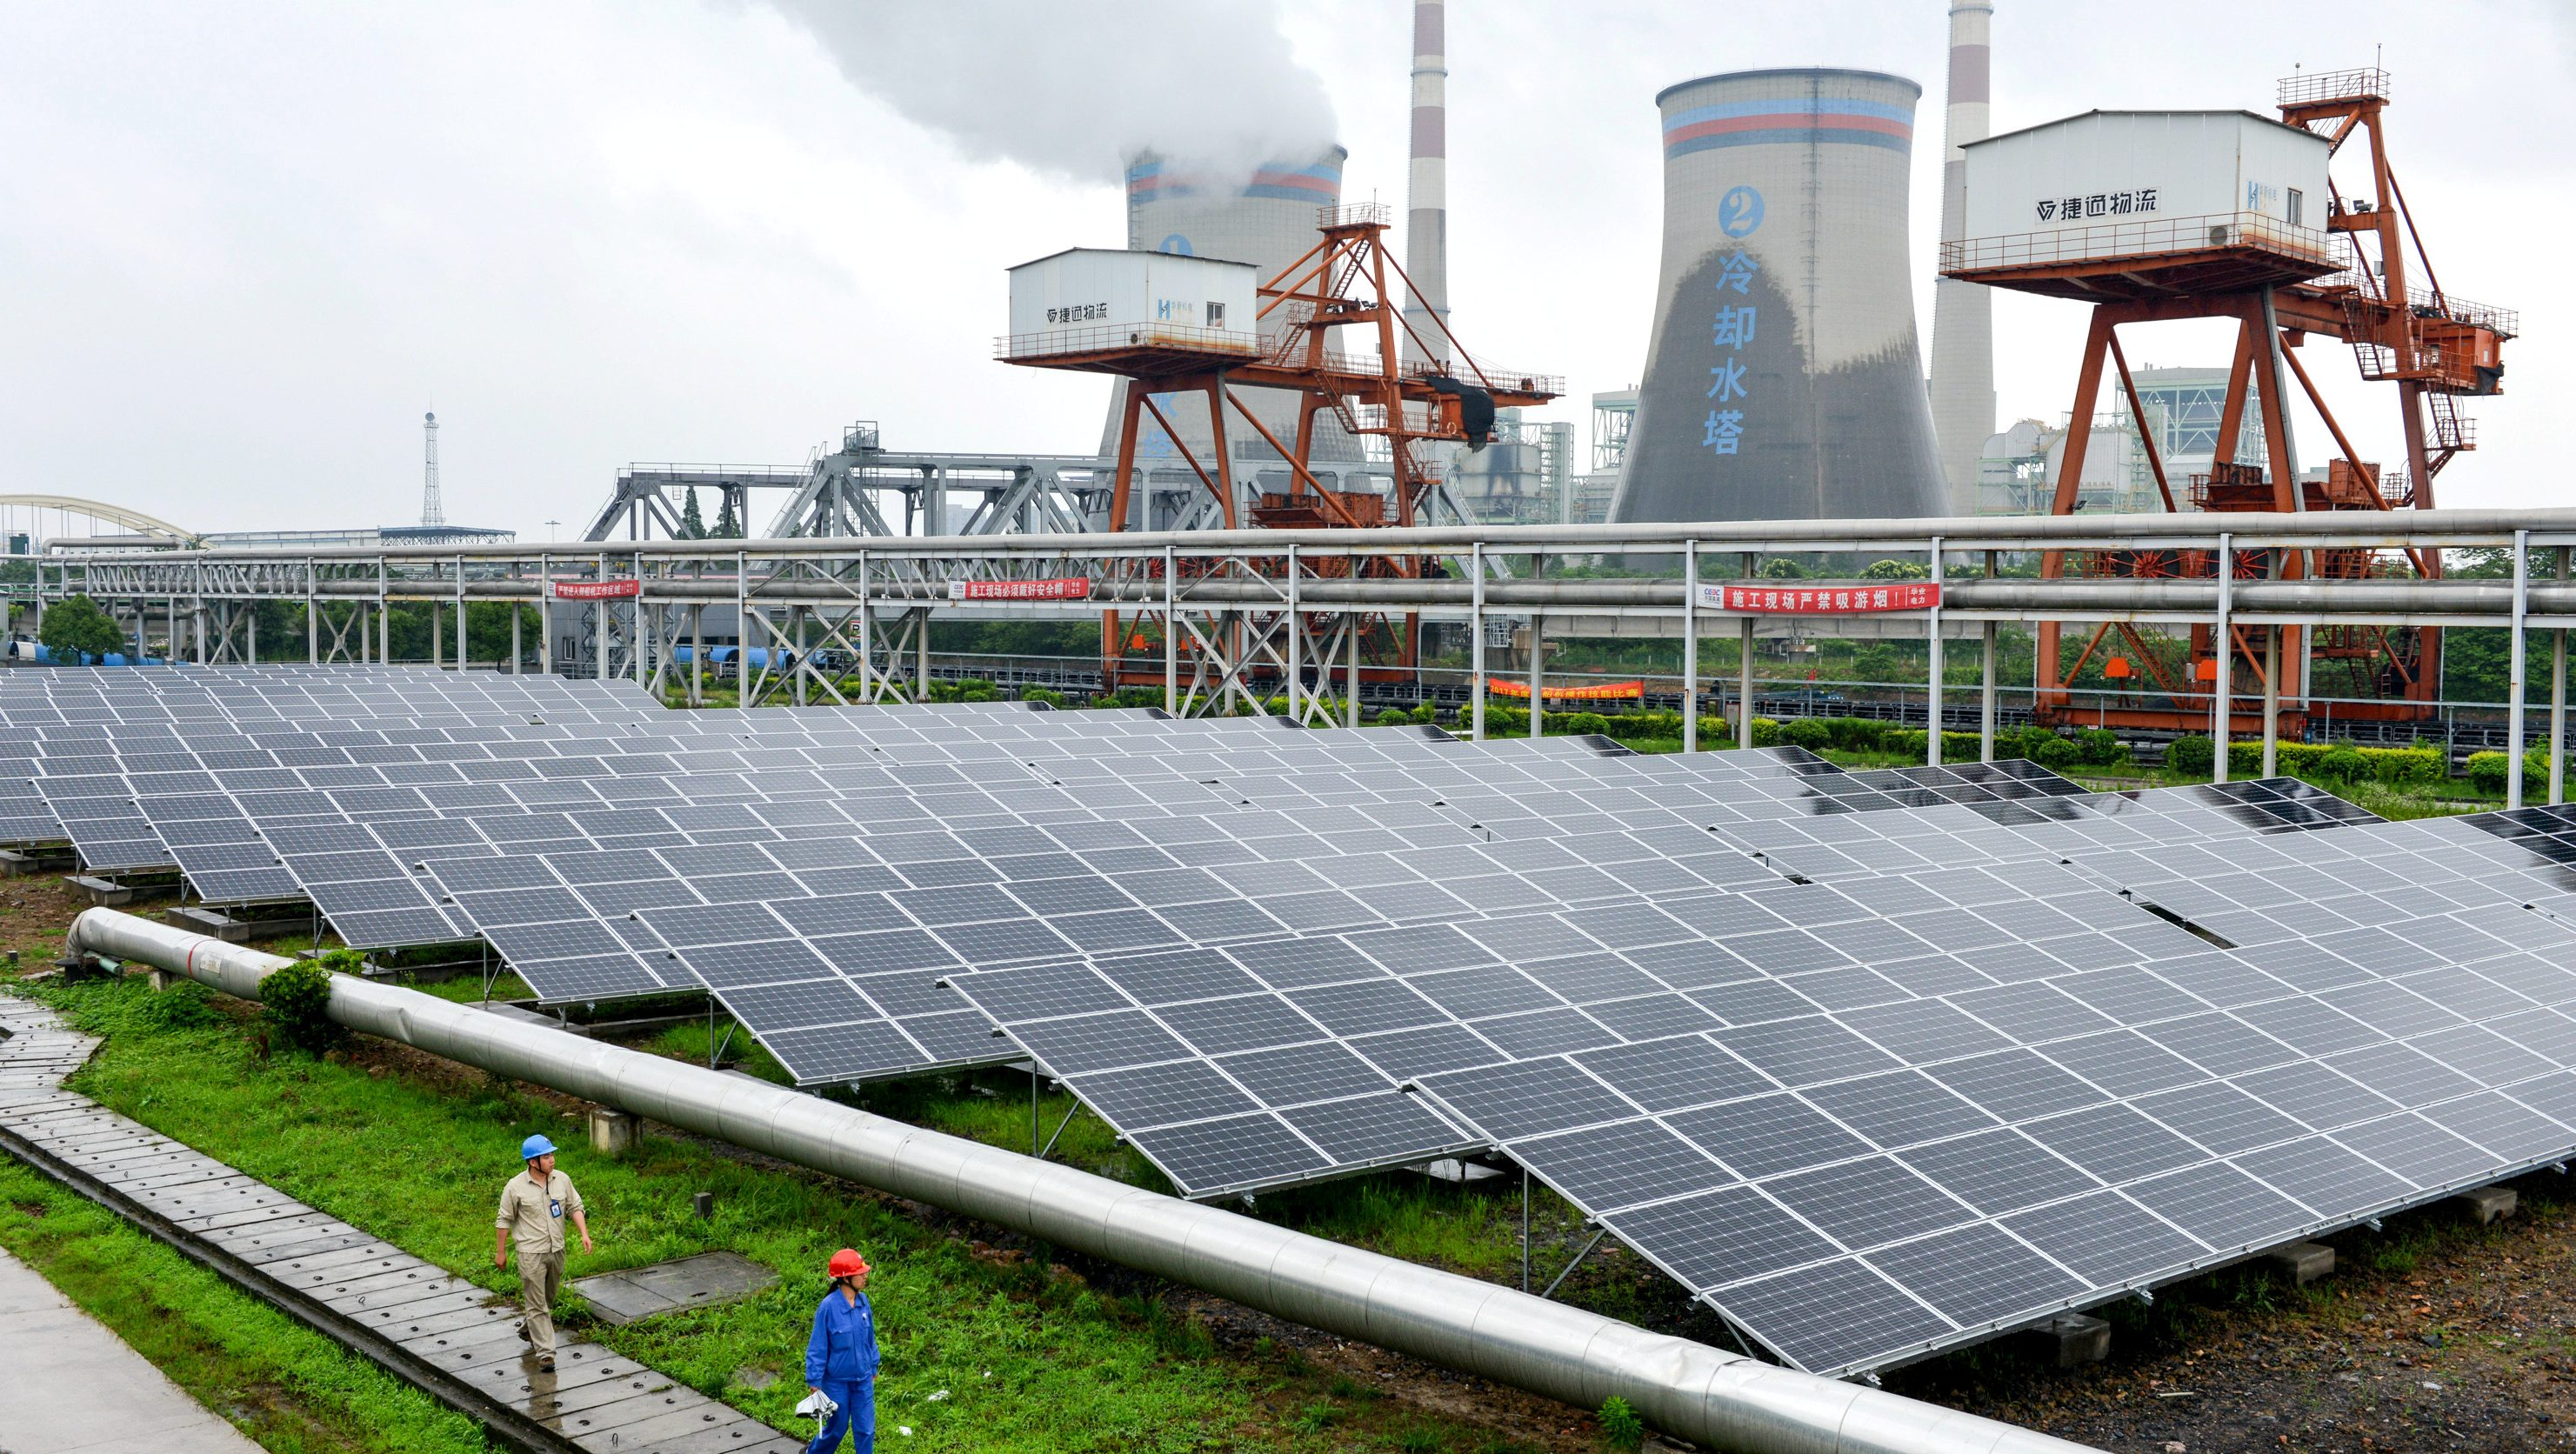 Employees check solar panels, as they work on a grid-connected photovoltaic power generation project, at a power plant in Changxing County, Zhejiang Province, China June 13, 2017. REUTERS/Stringer ATTENTION EDITORS - THIS IMAGE WAS PROVIDED BY A THIRD PARTY. CHINA OUT. - RC1186A1AC70